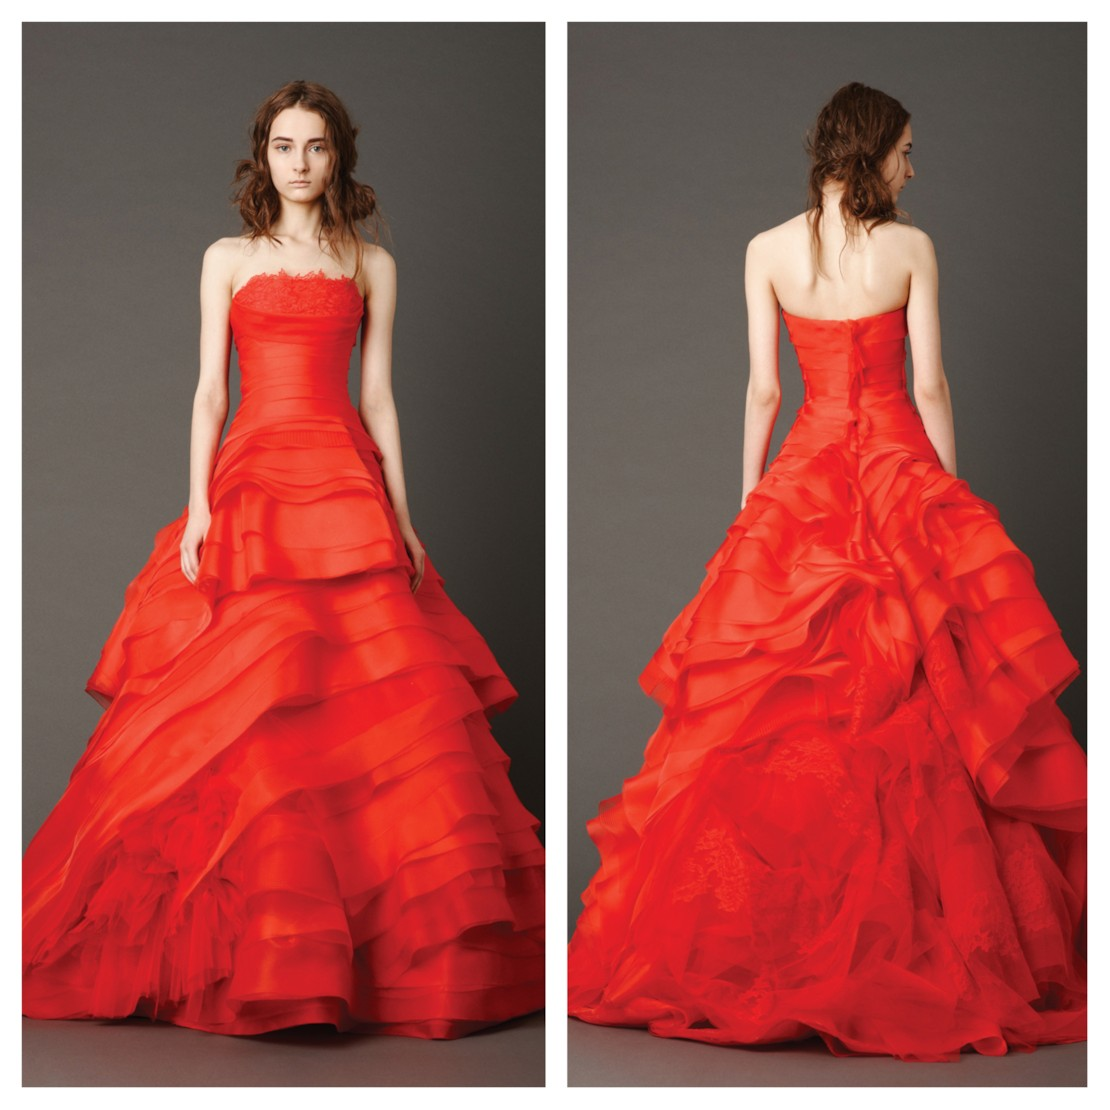 36aa5fd61f410 Bridal designer and expert Vera Wang has created the spring 2013 wedding  line with red ...